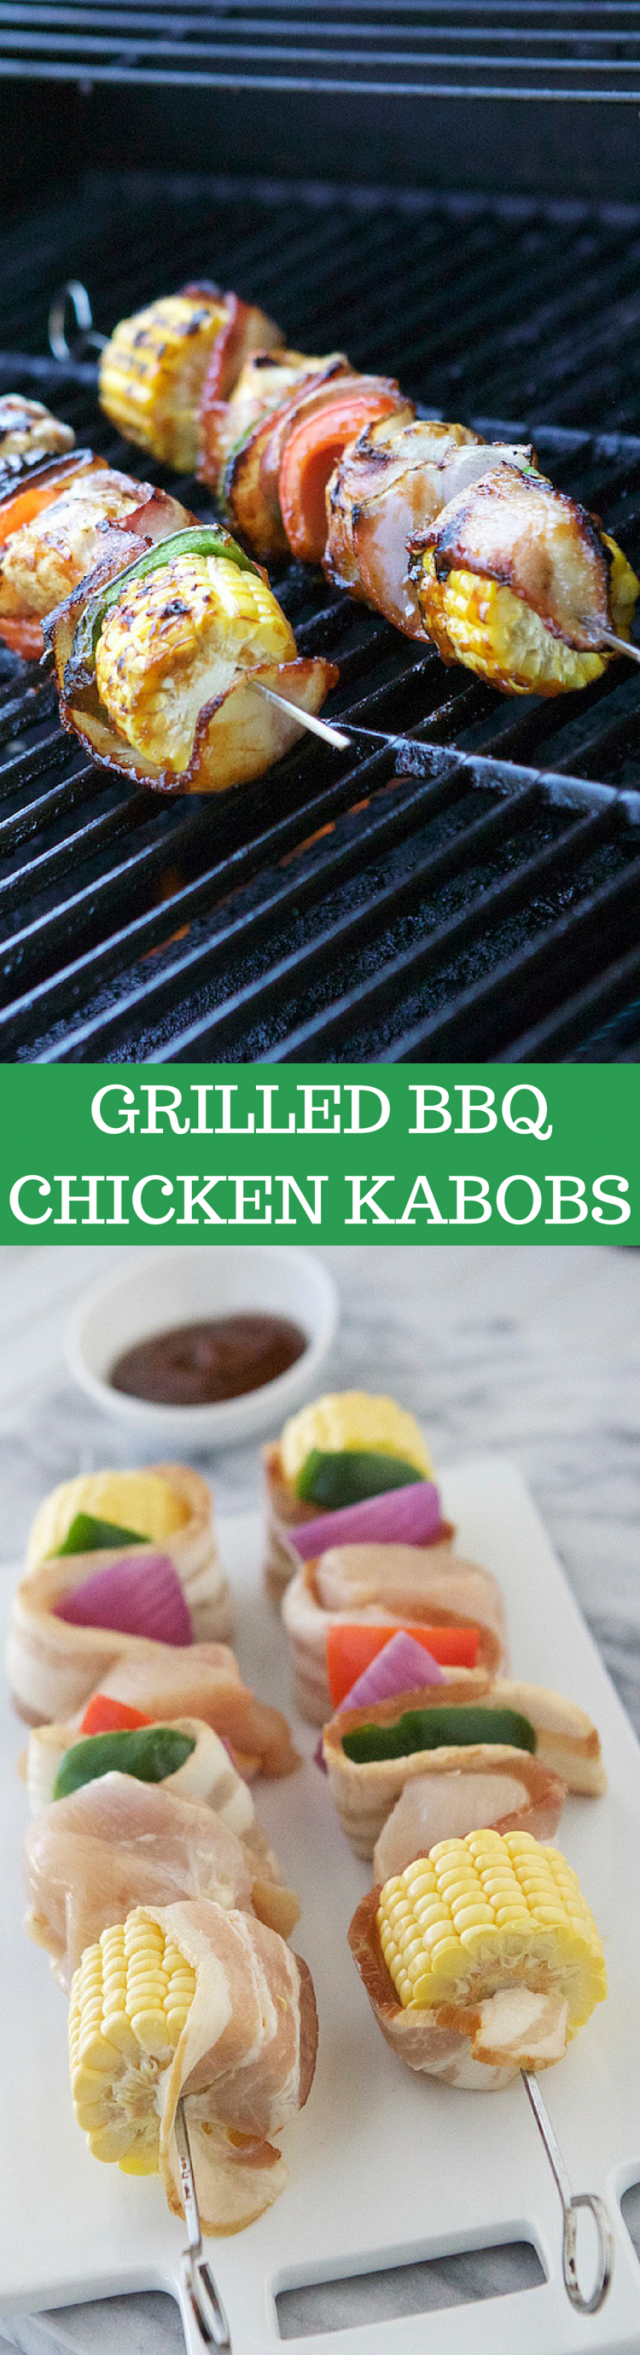 Grilled Barbecue Chicken Kabobs Recipe